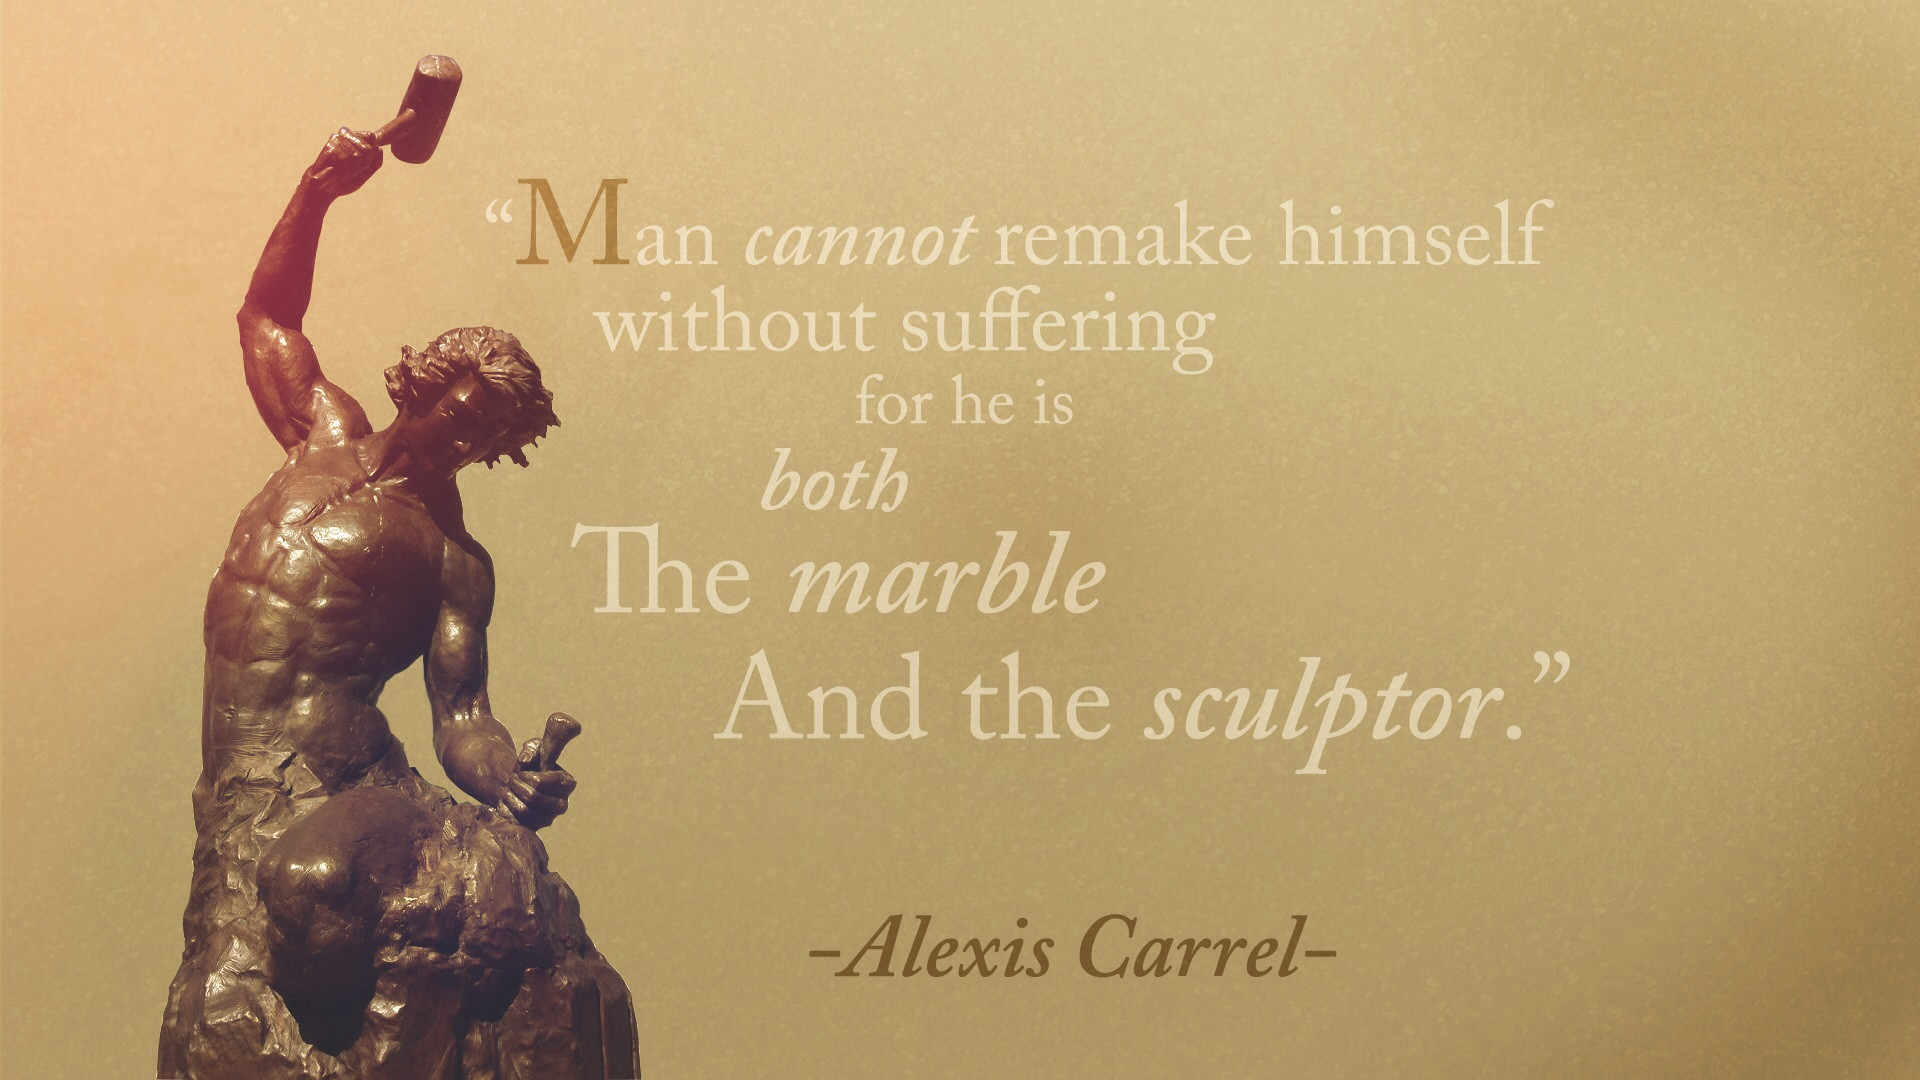 """Man cannot remake himself without suffering for he is both the marble and the sculptor."" – Alexis Carrel [1920×1080]"